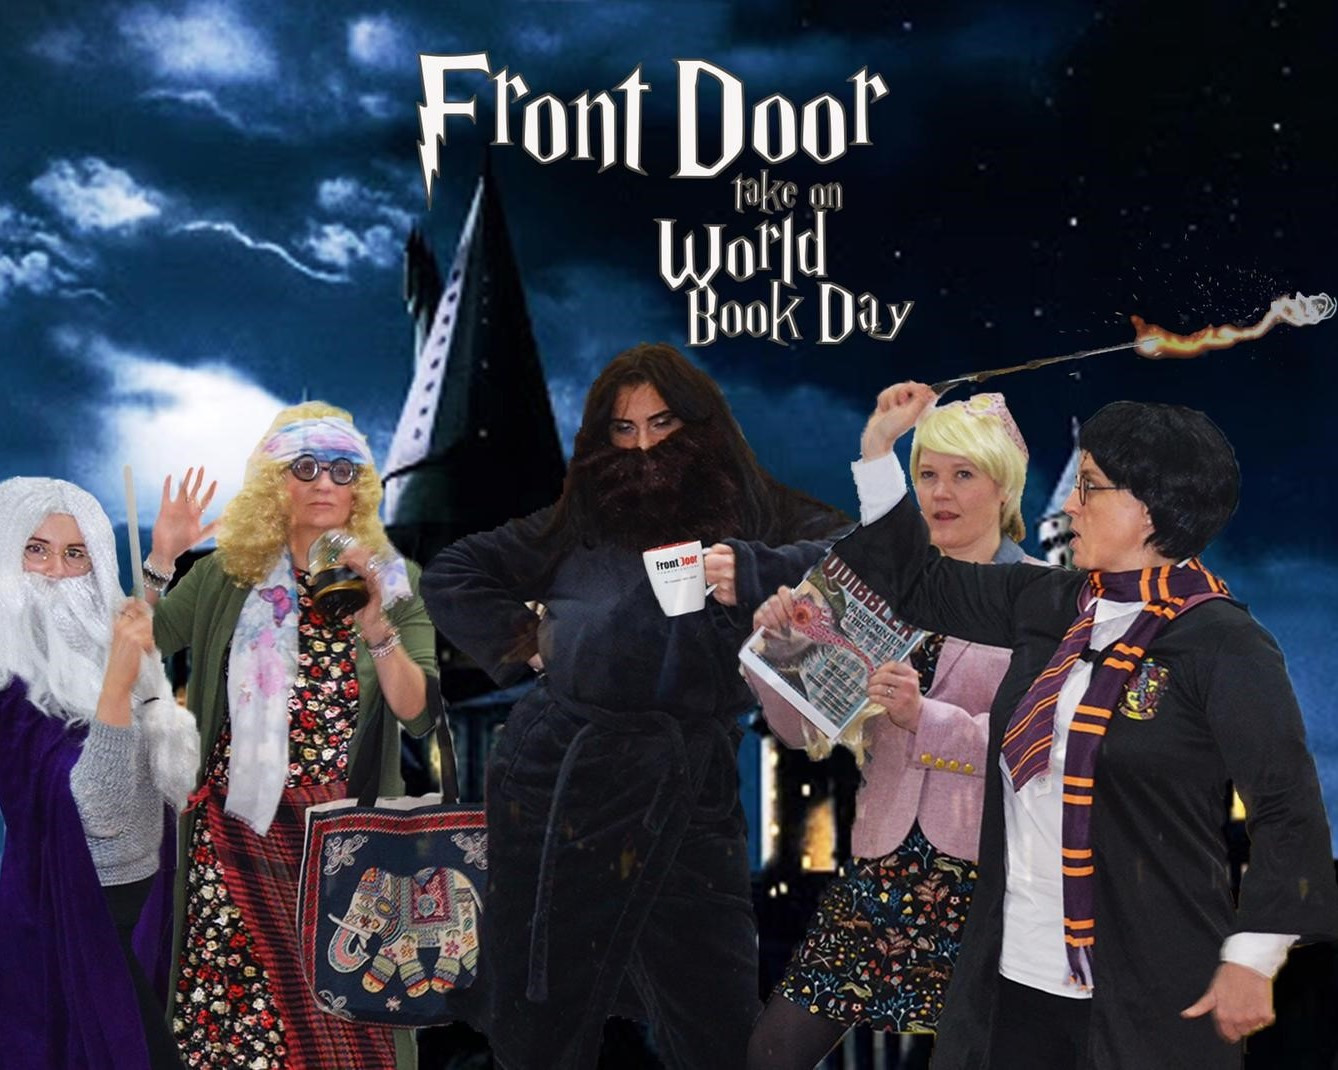 The Front Door team dressed as Harry Potter characters for World Book Day 2020